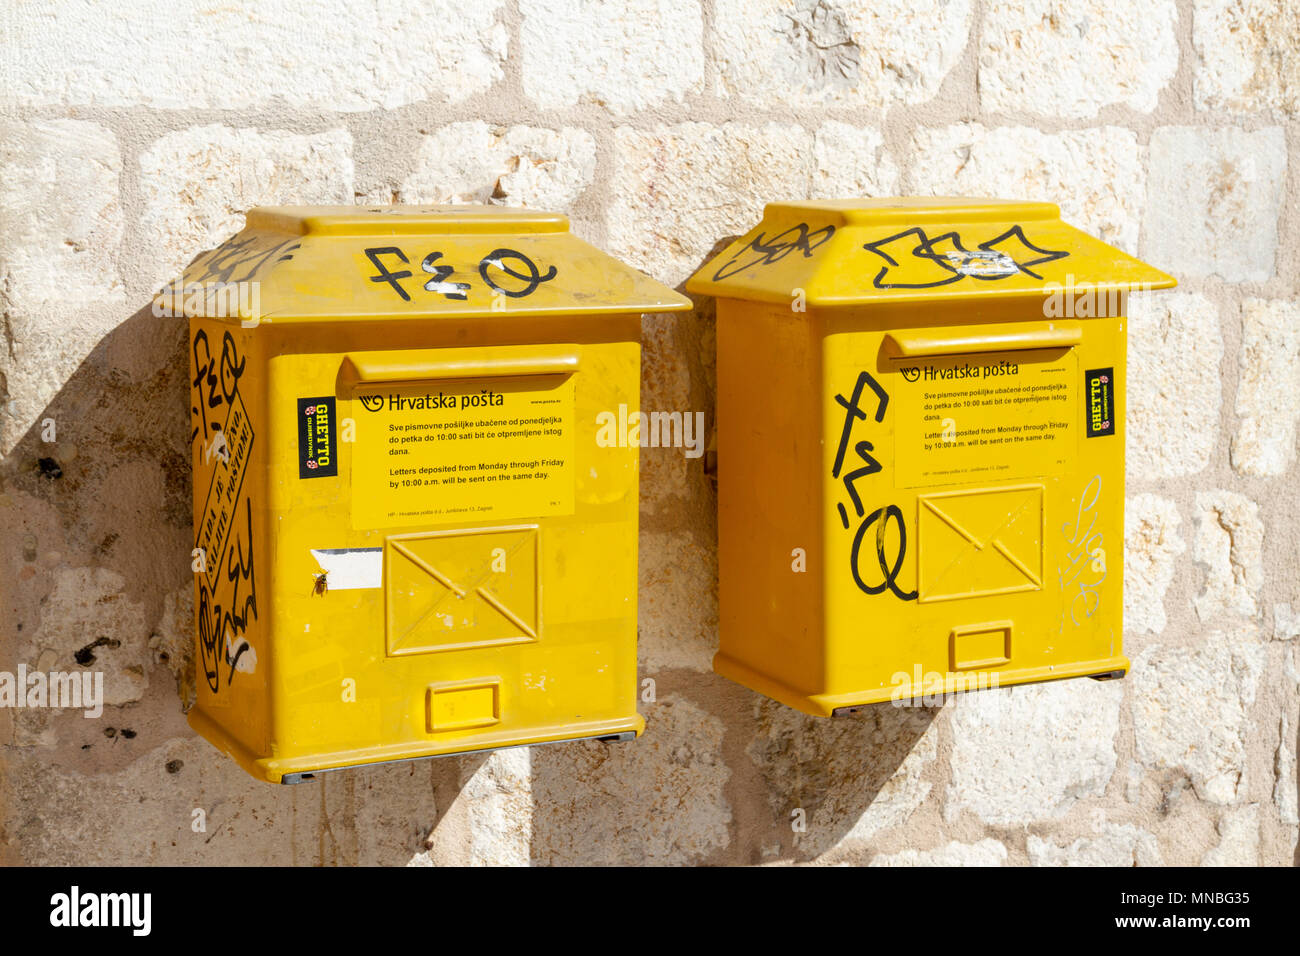 A pair of Hrvatska Pošta (Croatian post Office) boxes on a wall in the Old City, Dubrovnik, Croatia. - Stock Image